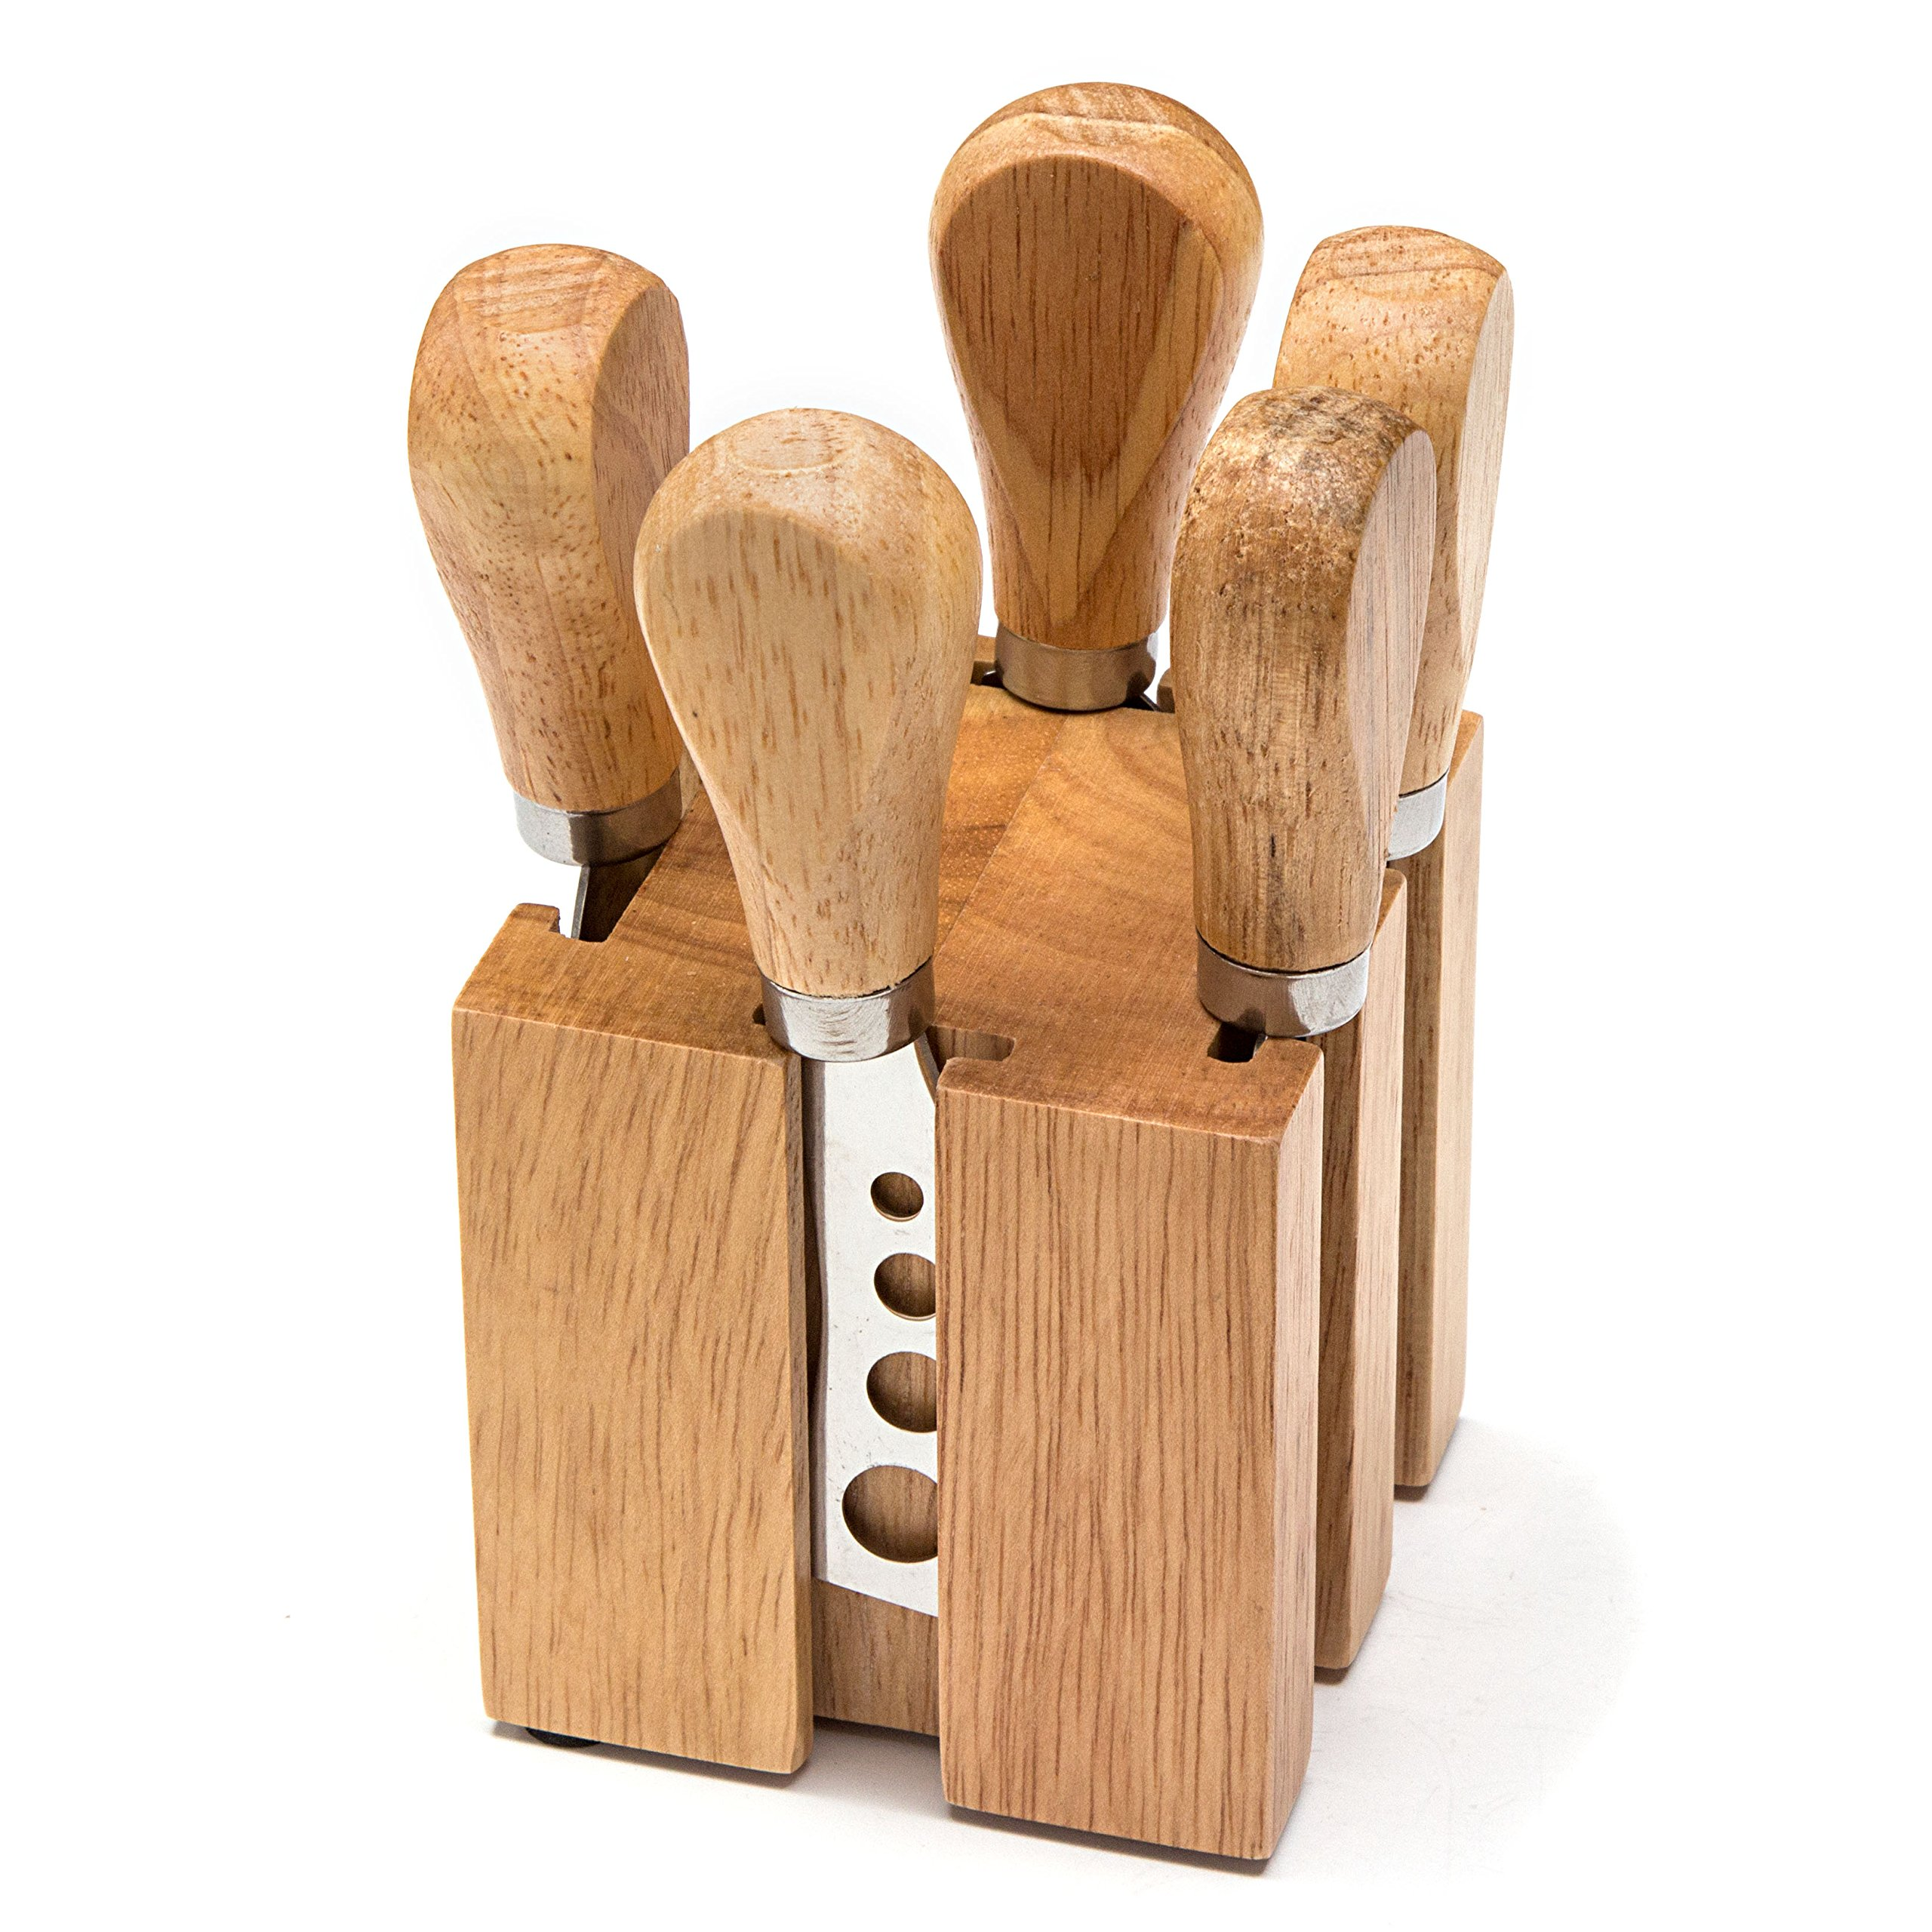 HULLR Premium Stainless Steel Cheese Knives Set Collection in Wood Cheese Block 6-Piece Set